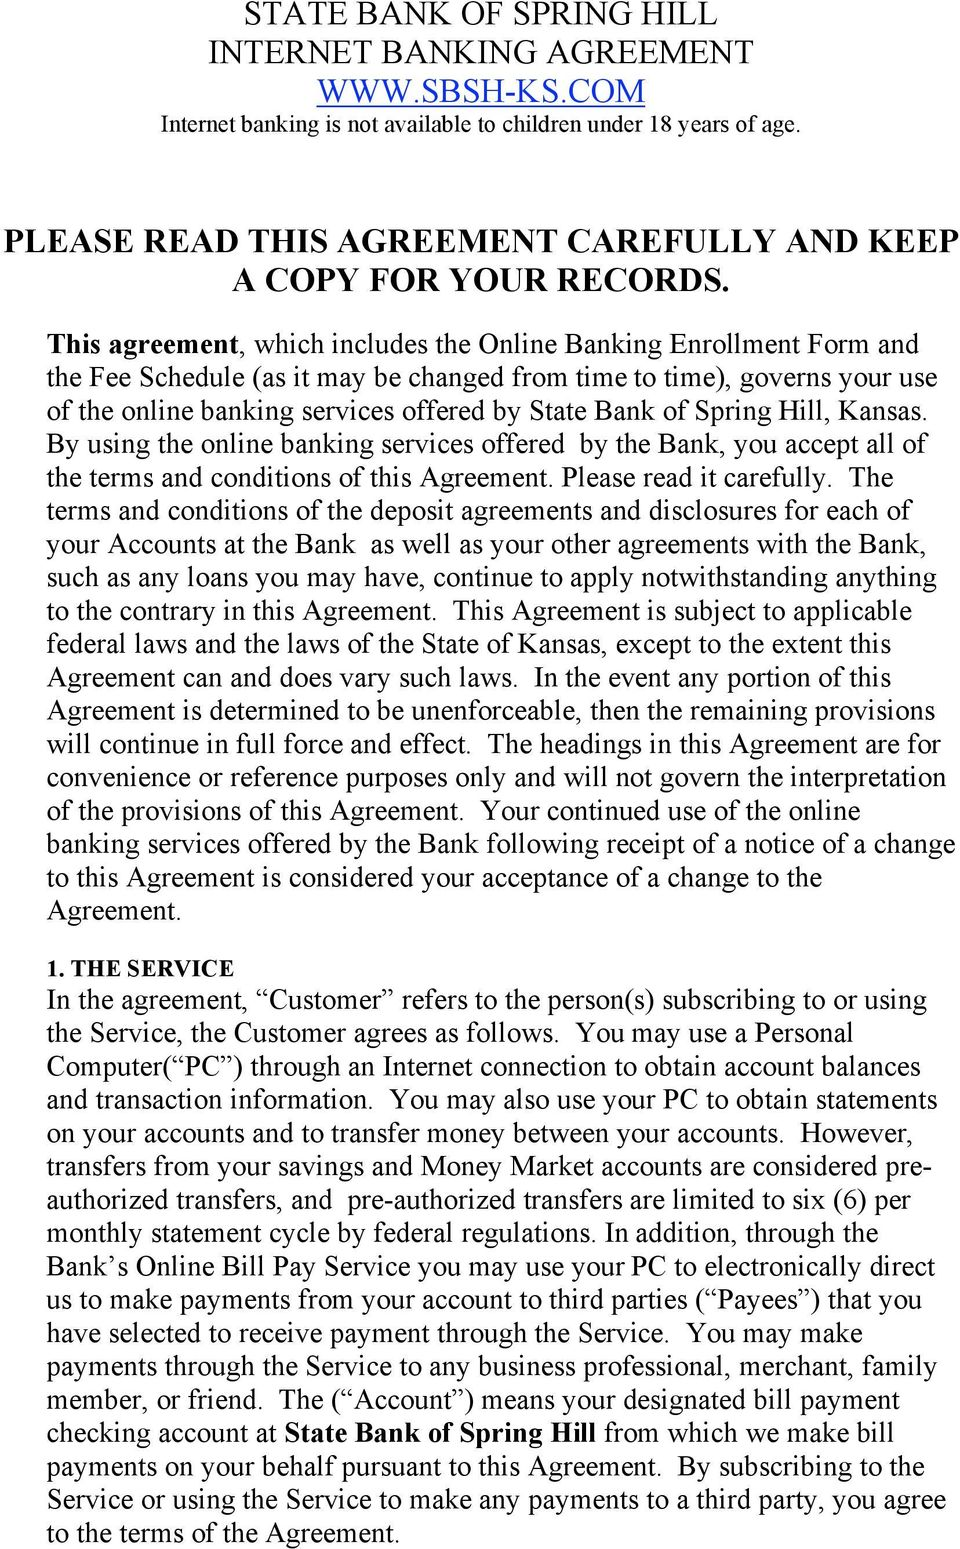 This agreement, which includes the Online Banking Enrollment Form and the Fee Schedule (as it may be changed from time to time), governs your use of the online banking services offered by State Bank